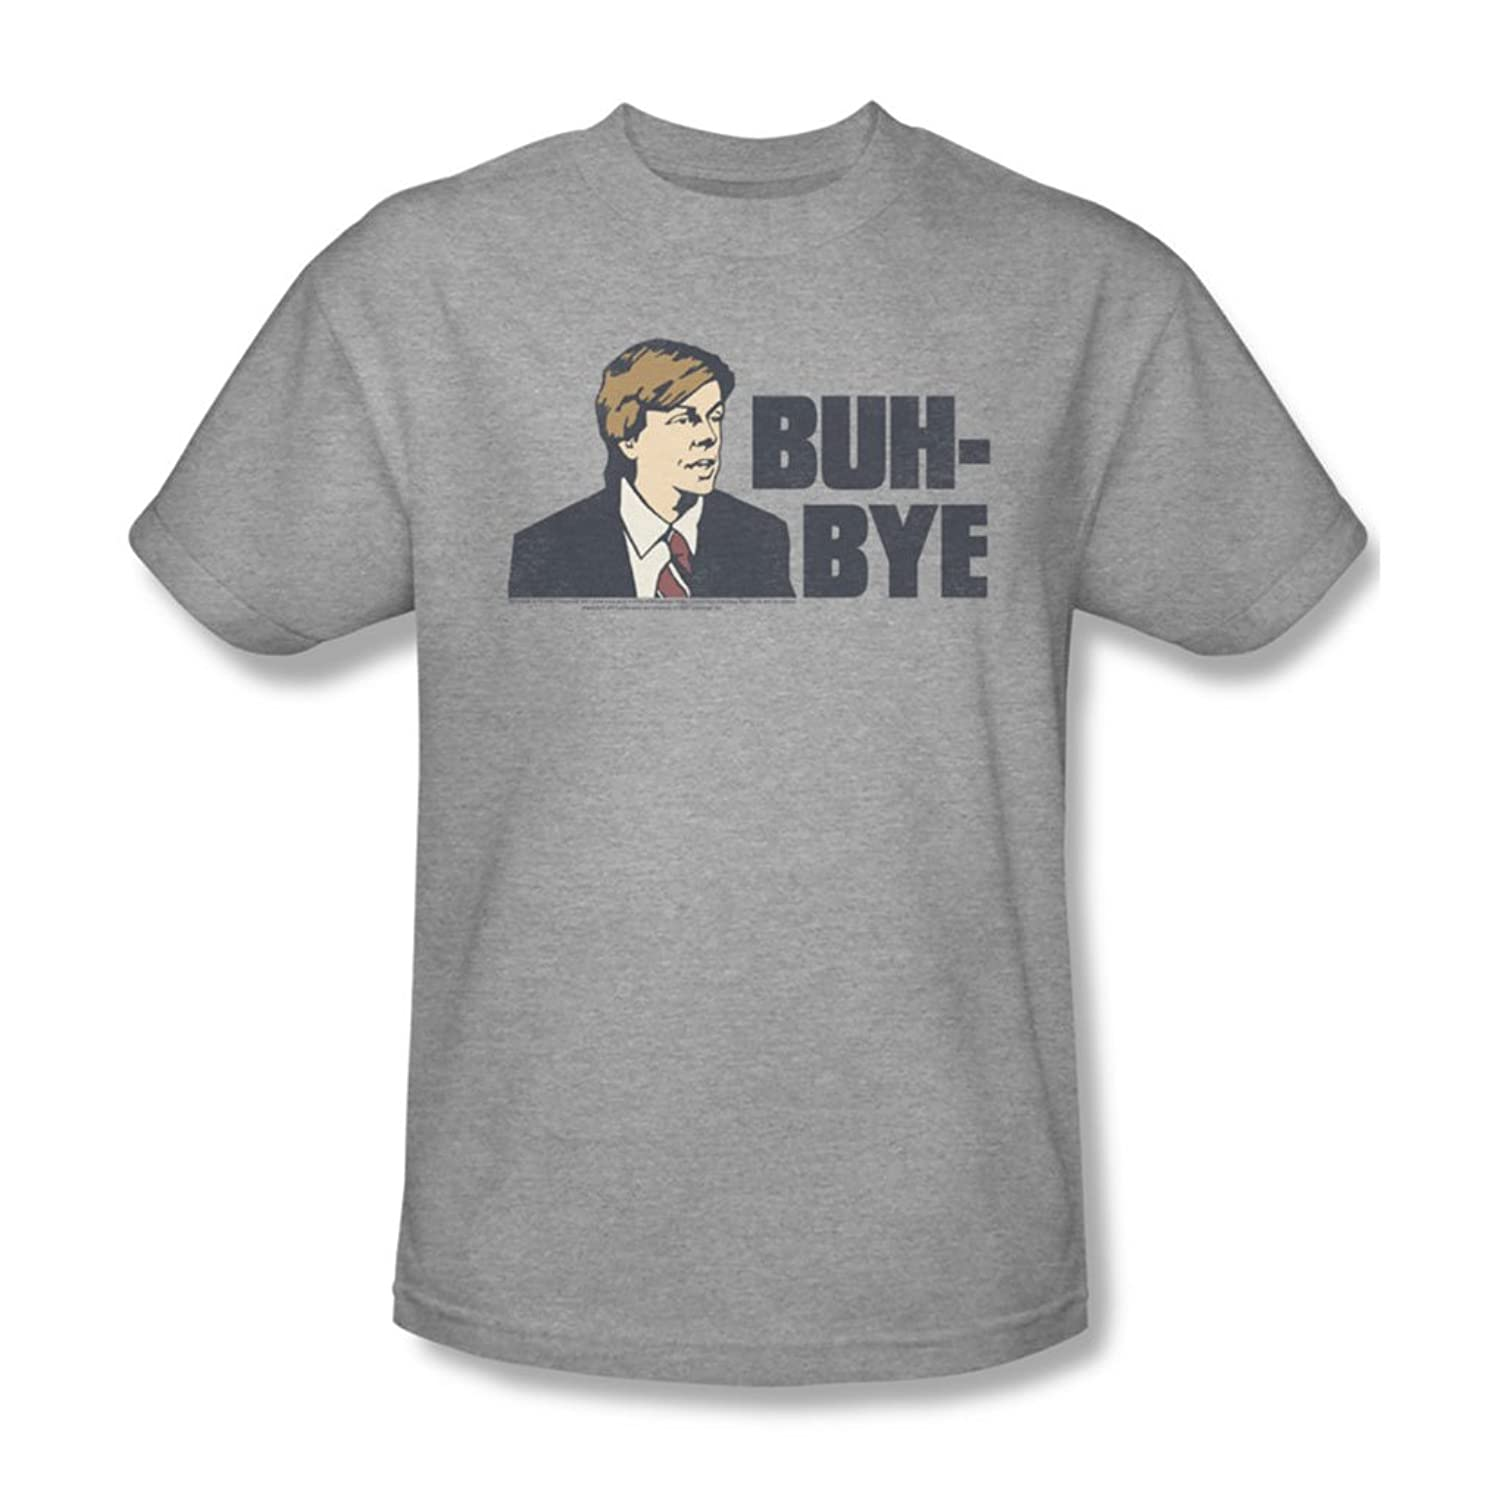 Saturday Night Live - Mens Buh Bye T-Shirt In Heather